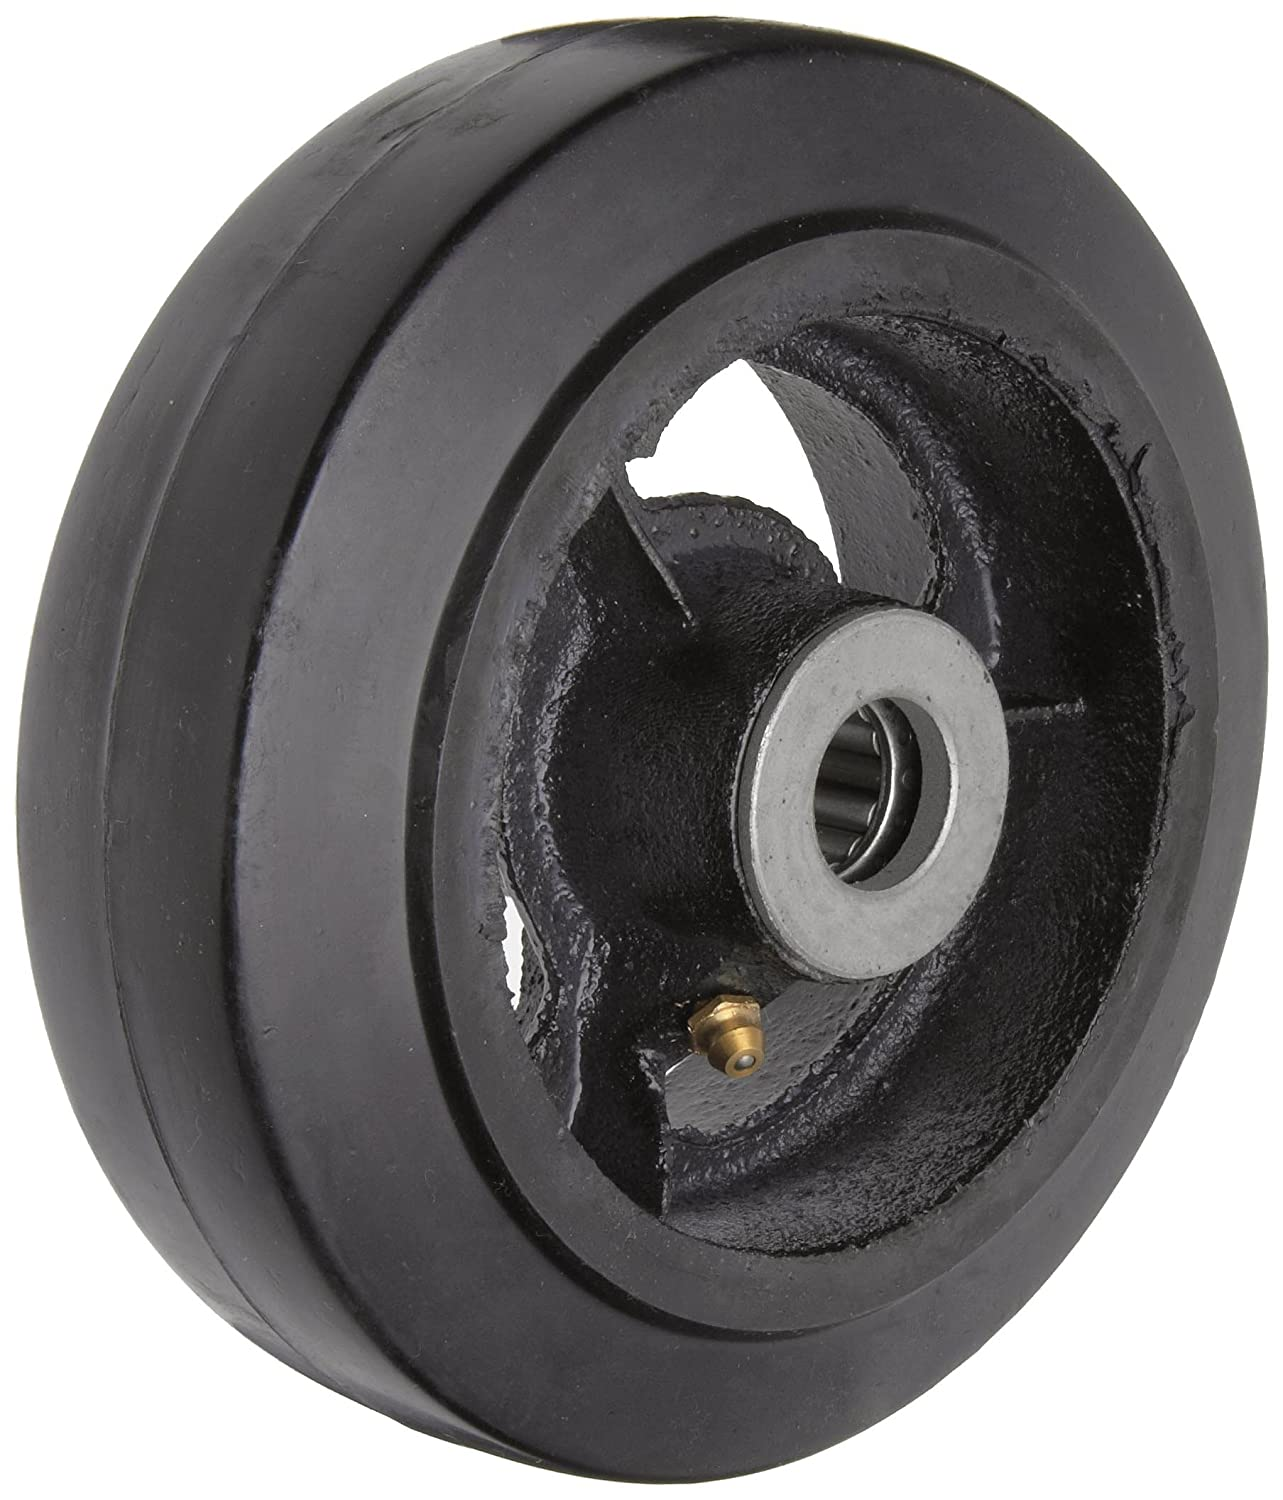 RWM Casters Mold On Rubber on Iron Wheel Roller Bearing 410 lbs Capacity 6 Wheel Dia 2 Wheel Width 2 7 16 Plate Length